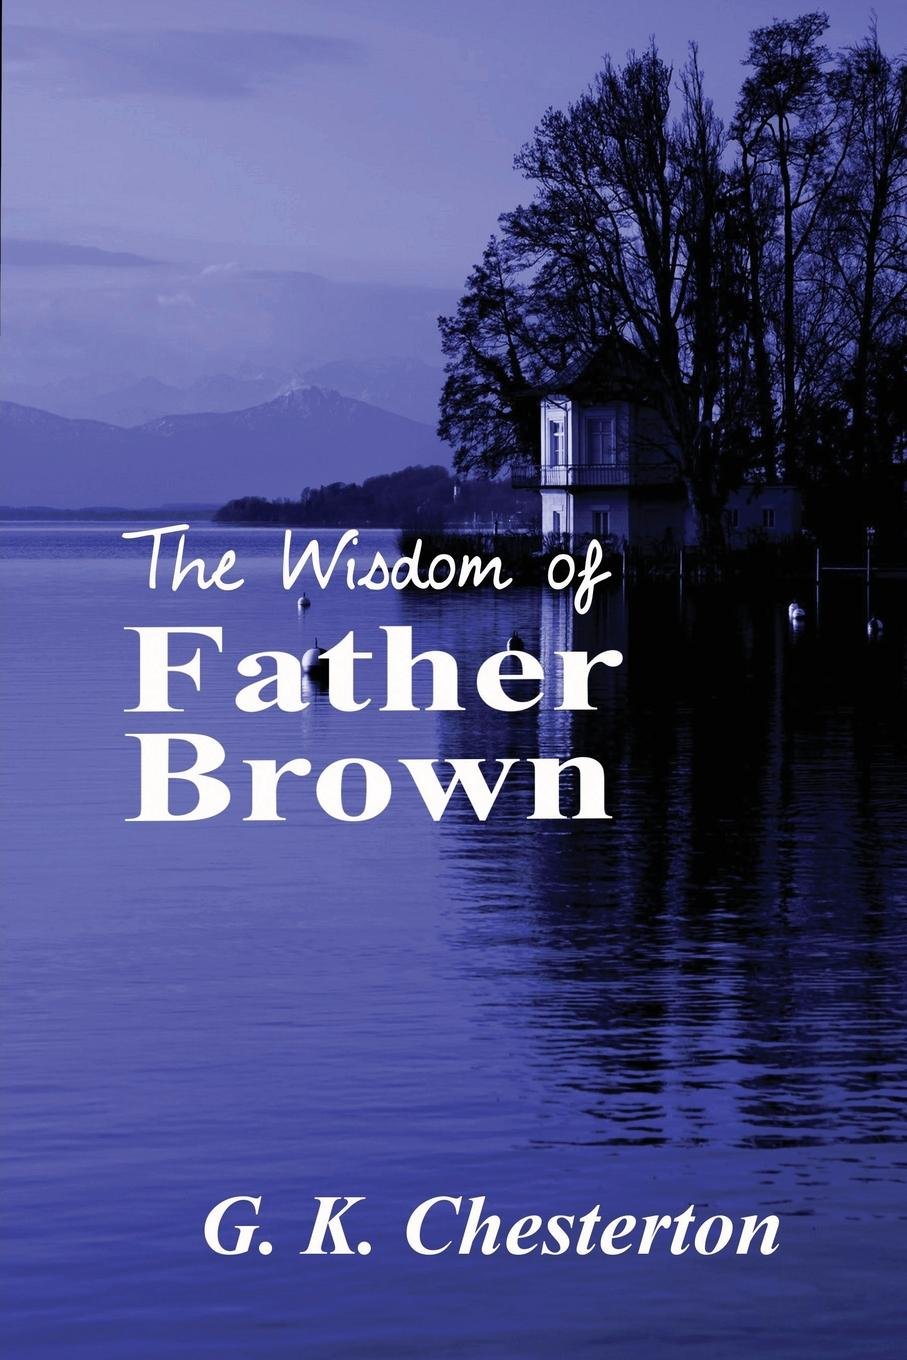 лучшая цена G. K. Chesterton The Wisdom of Father Brown